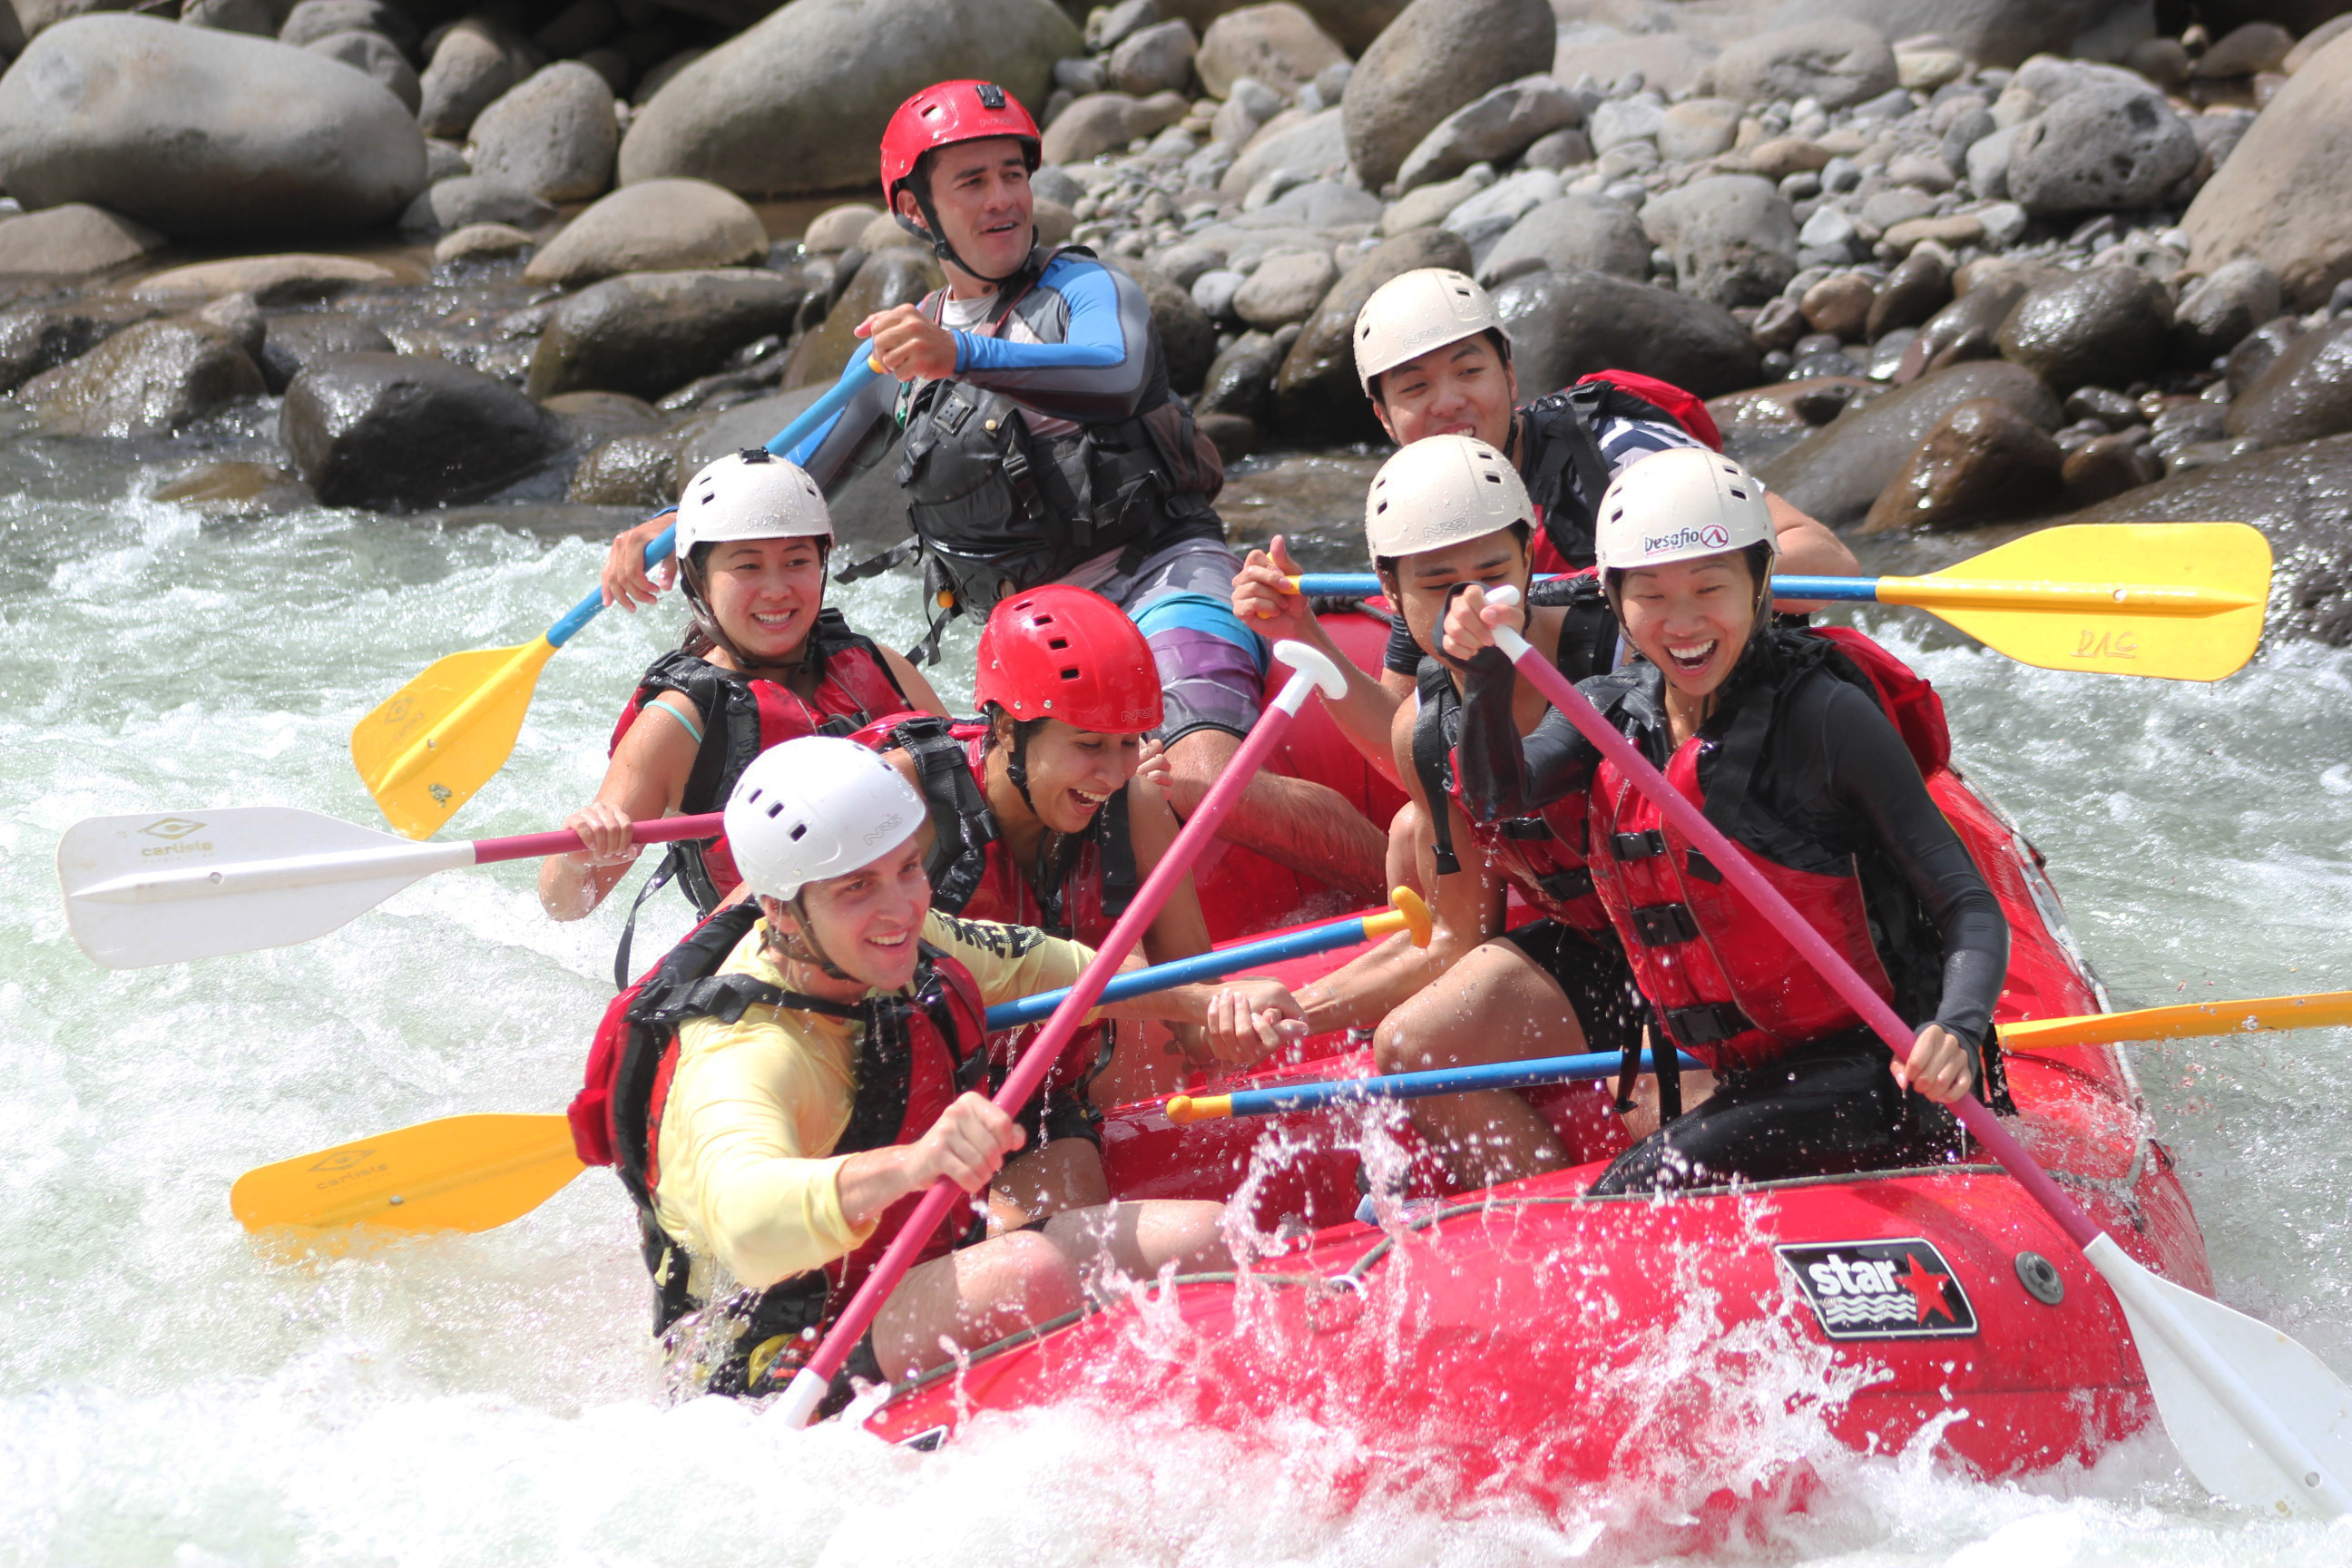 San Jose to La Fortuna Arenal Rafting on the Balsa River Class 2-3